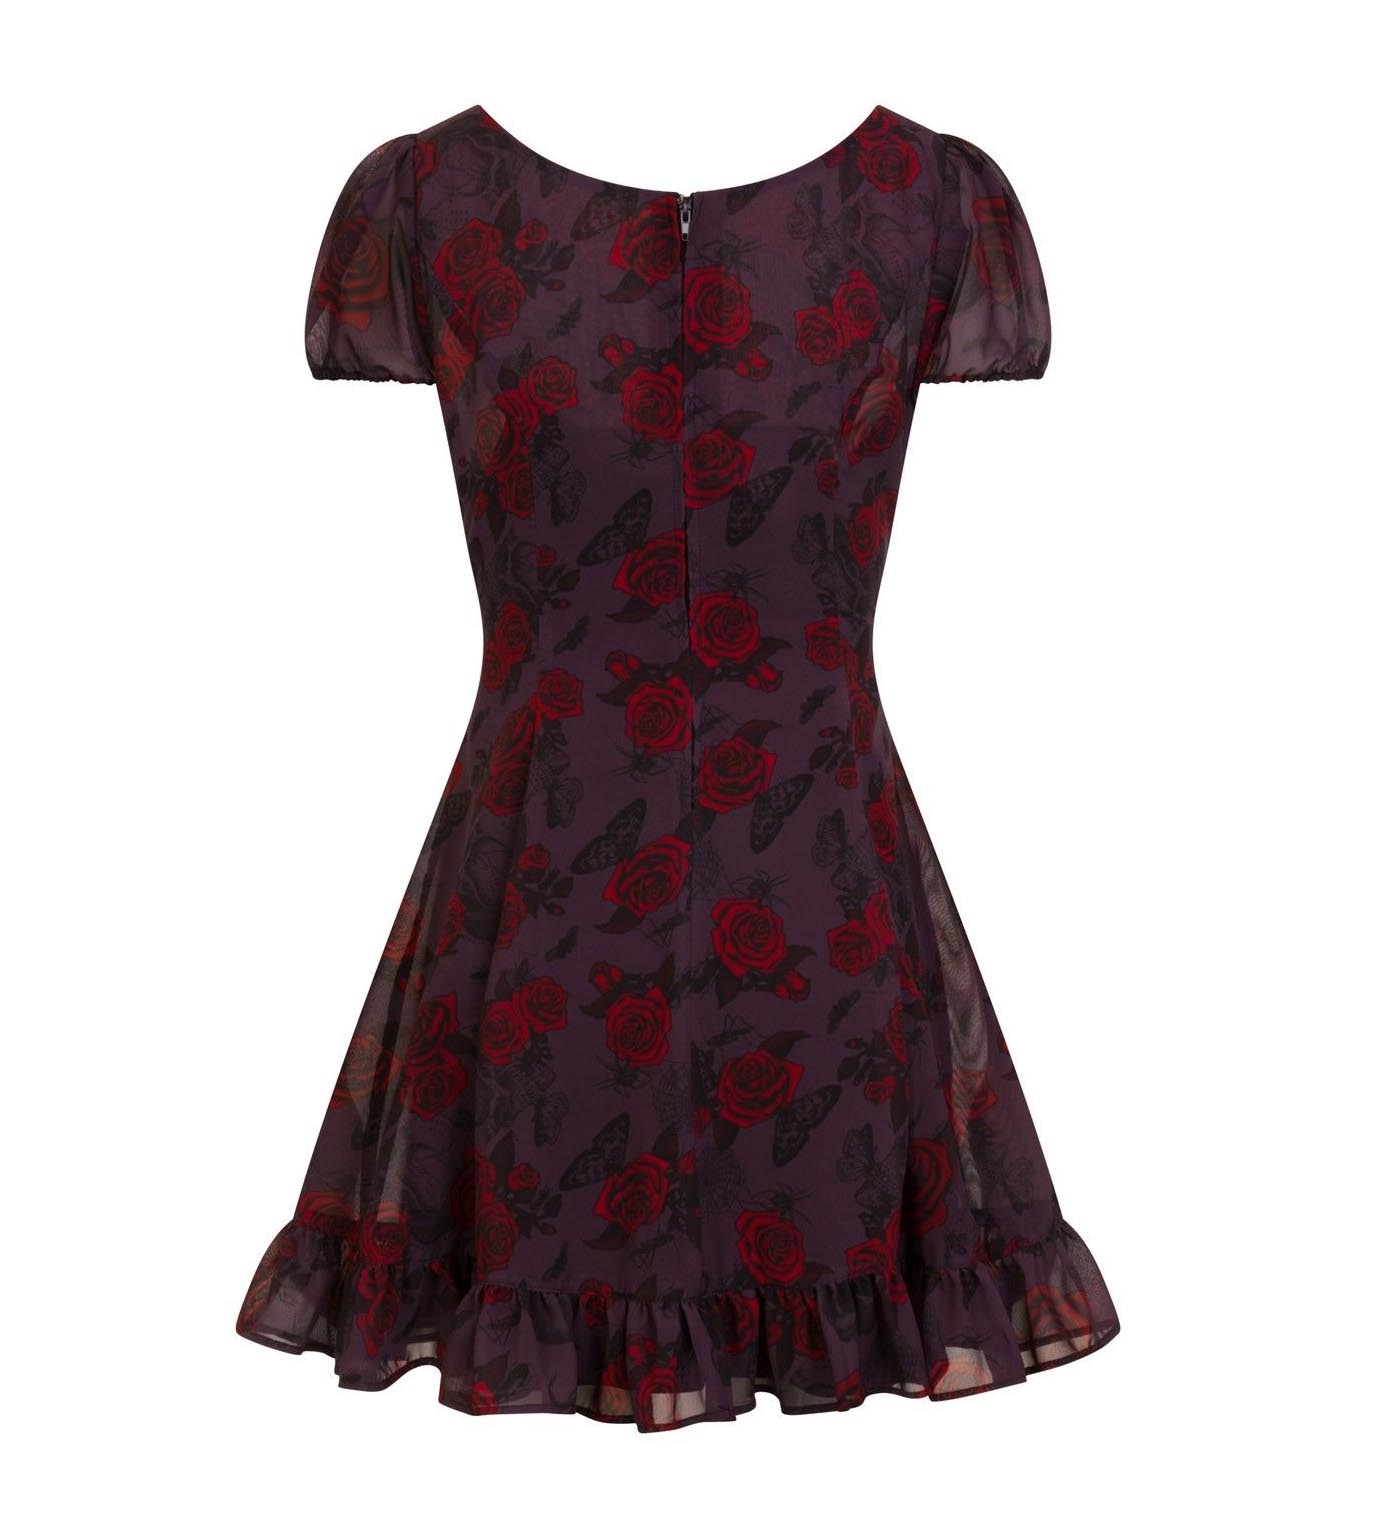 Hell-Bunny-Goth-Floaty-Mini-Dress-BUGS-amp-ROSES-Skulls-Butterfly-Purple-All-Sizes thumbnail 7